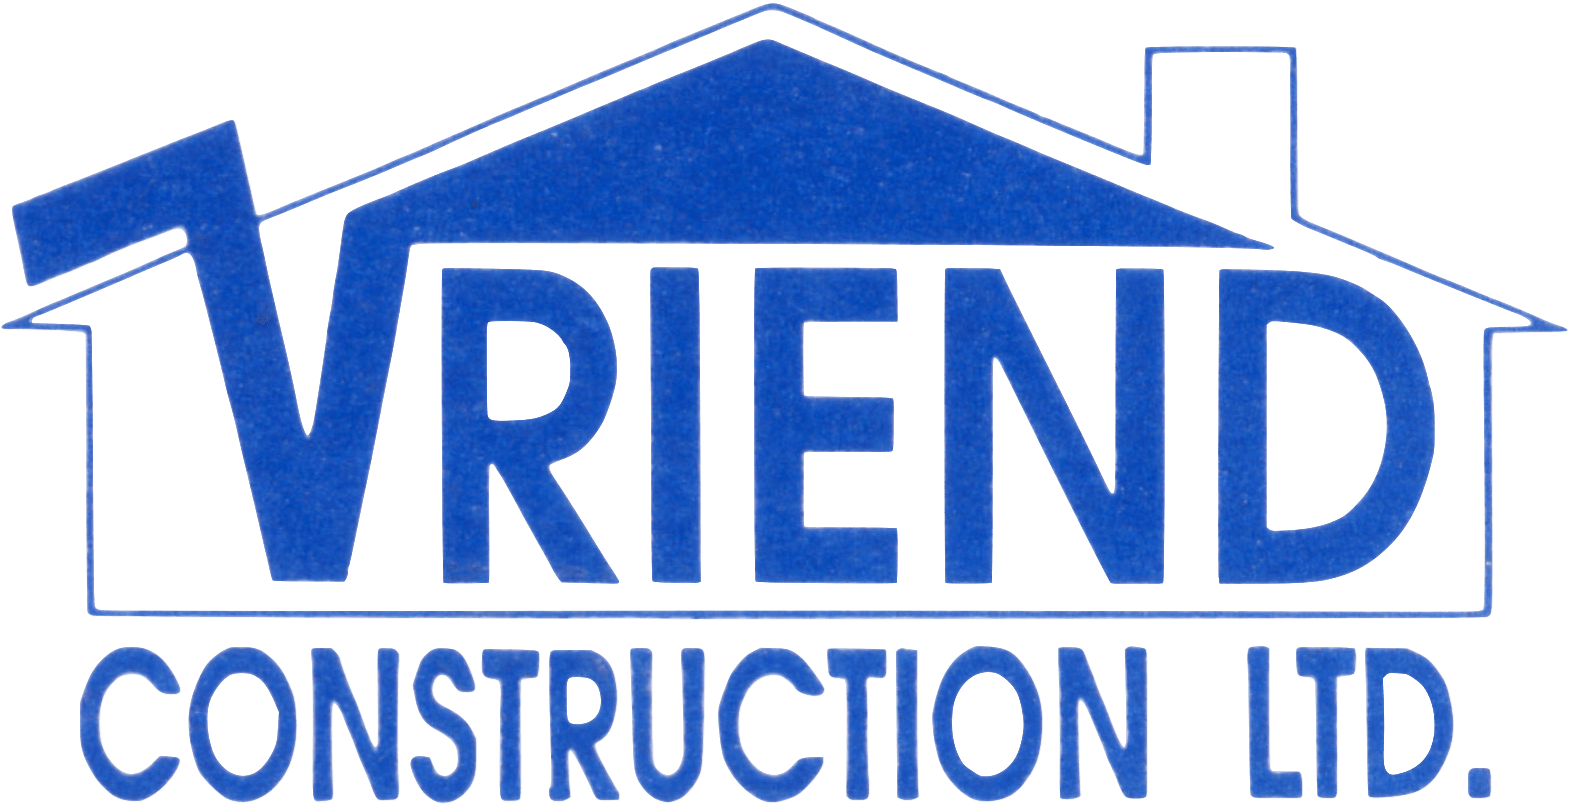 Construction Ltd Commercial Residential Construction In Ottawa Canada Vriend